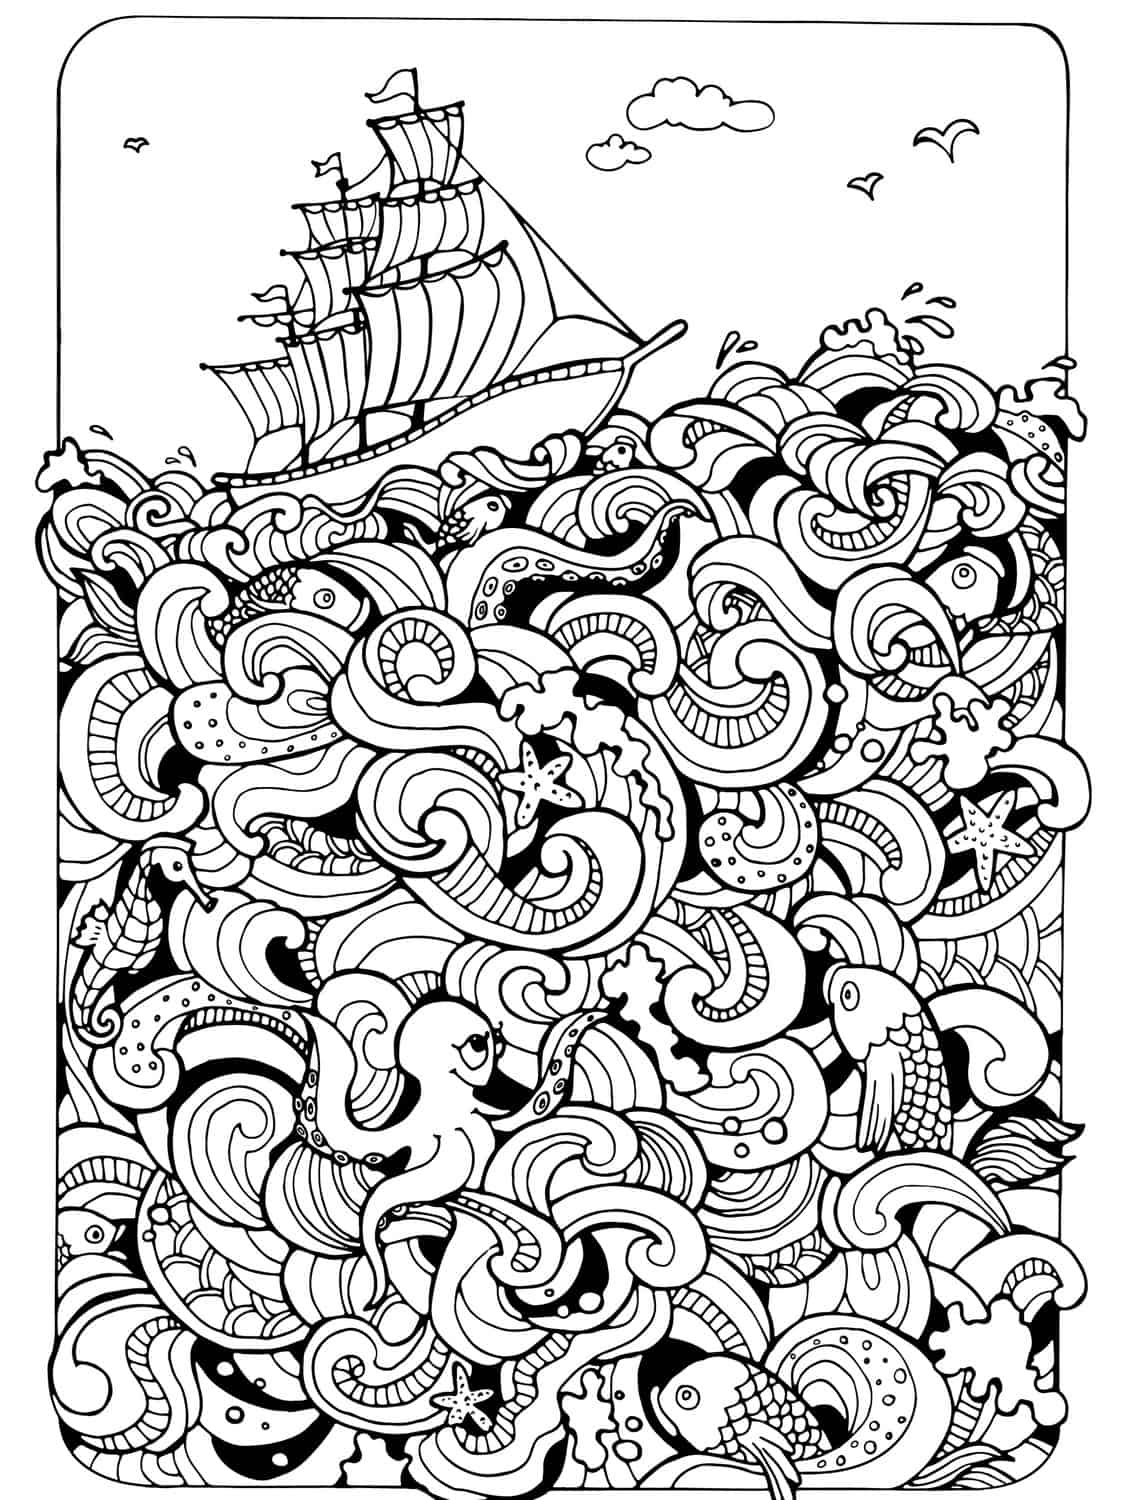 1000 images about colouring pages on pinterest coloring for Adult color page